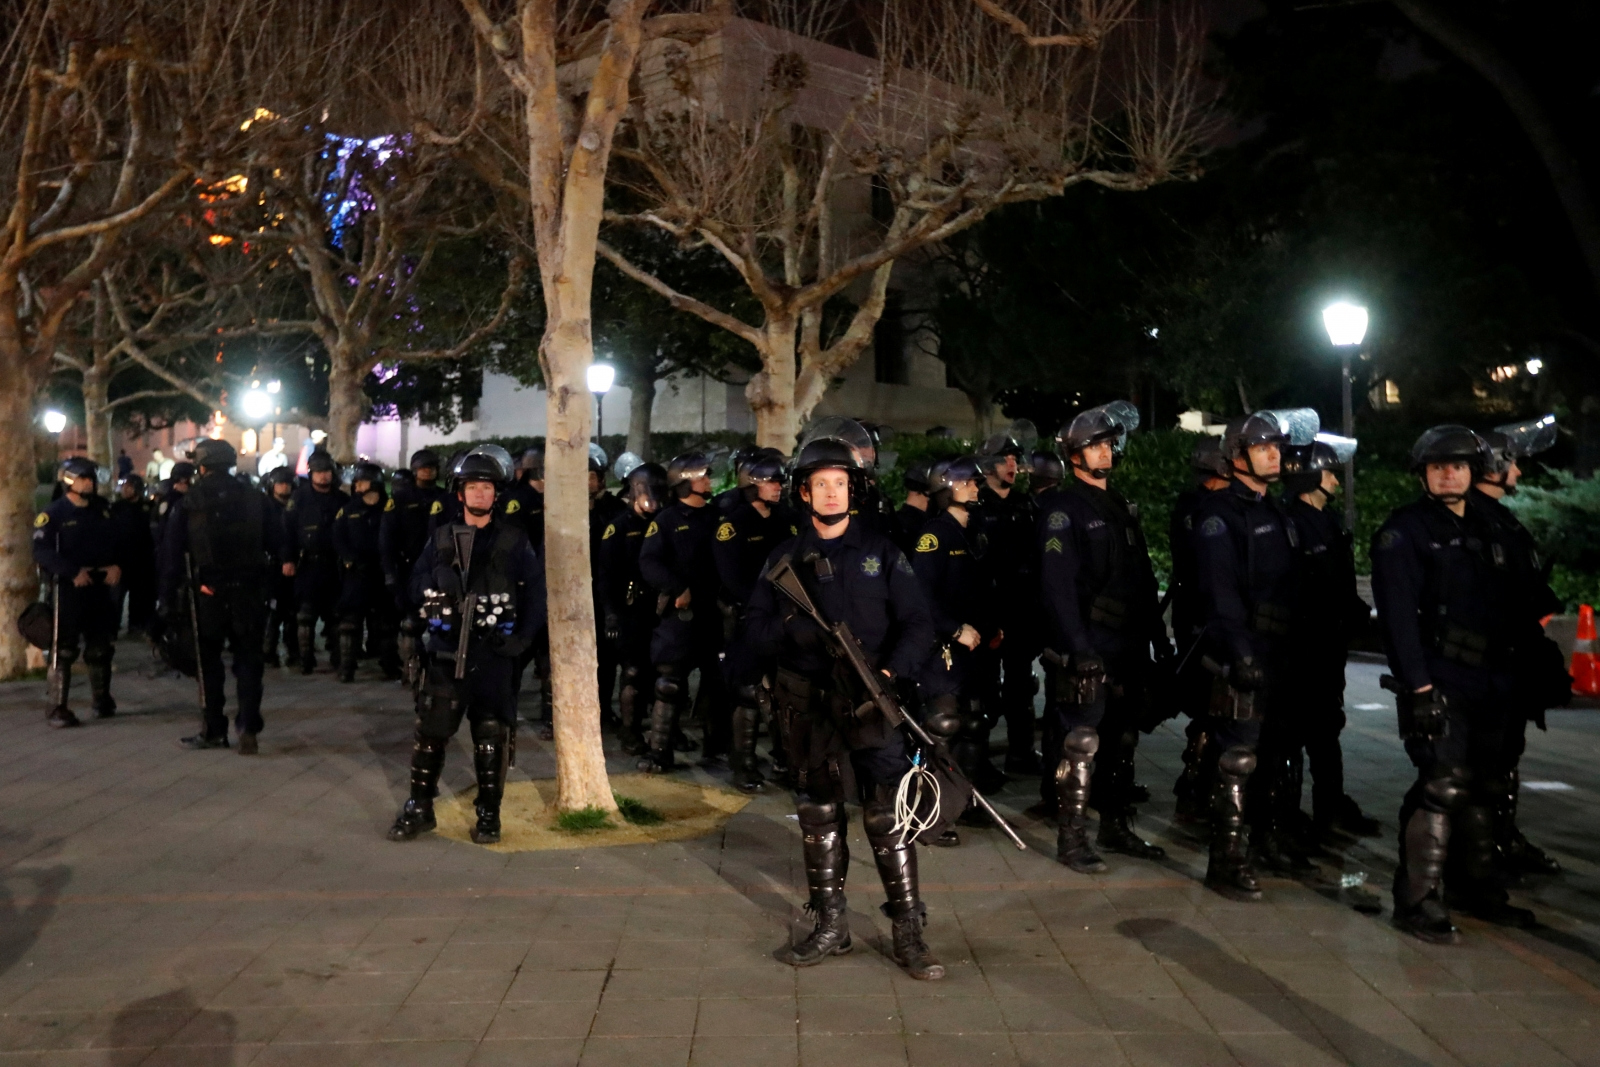 CALIFORNIA-UCBERKELEYPROTESTS